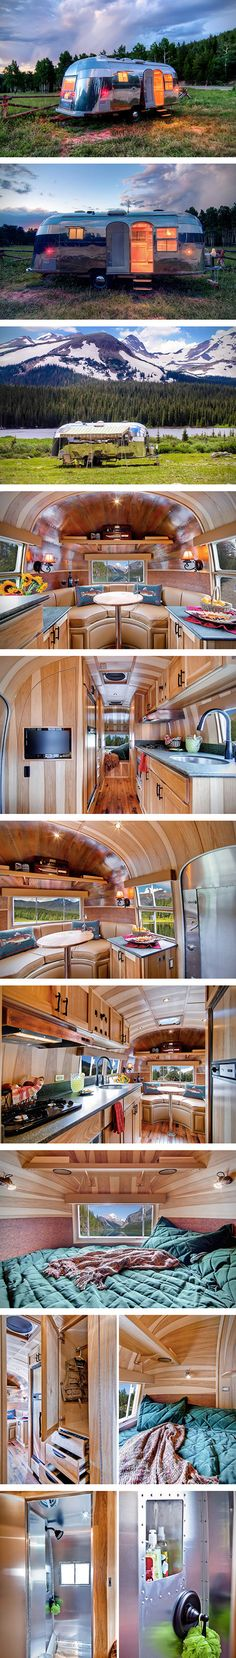 Travelling around inside one of these ones would be simply amazing!